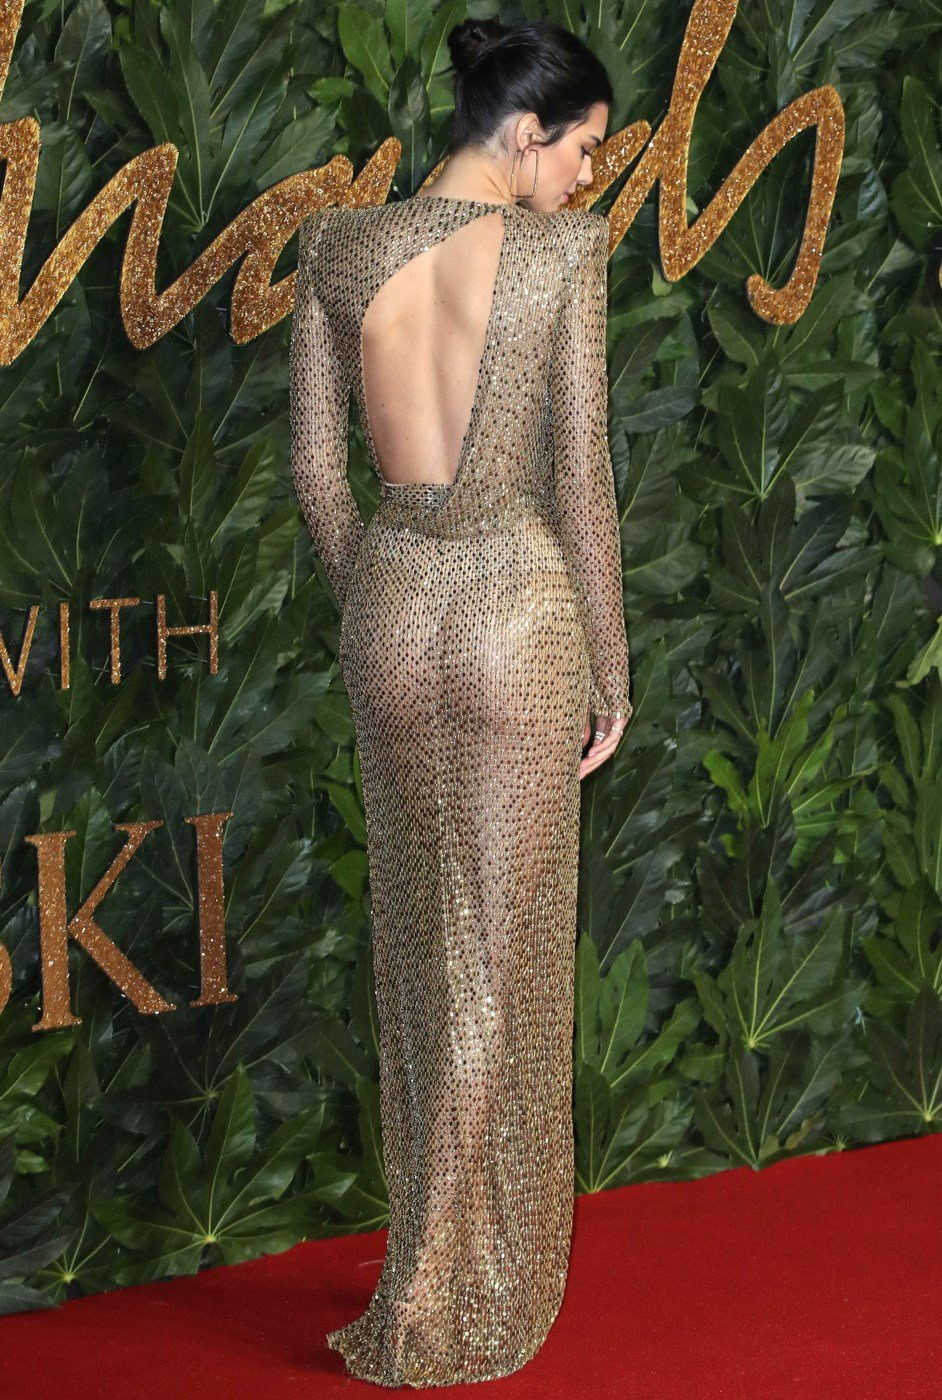 Kendall Jenner Shows Her Tits And Ass In A See Thru Dress